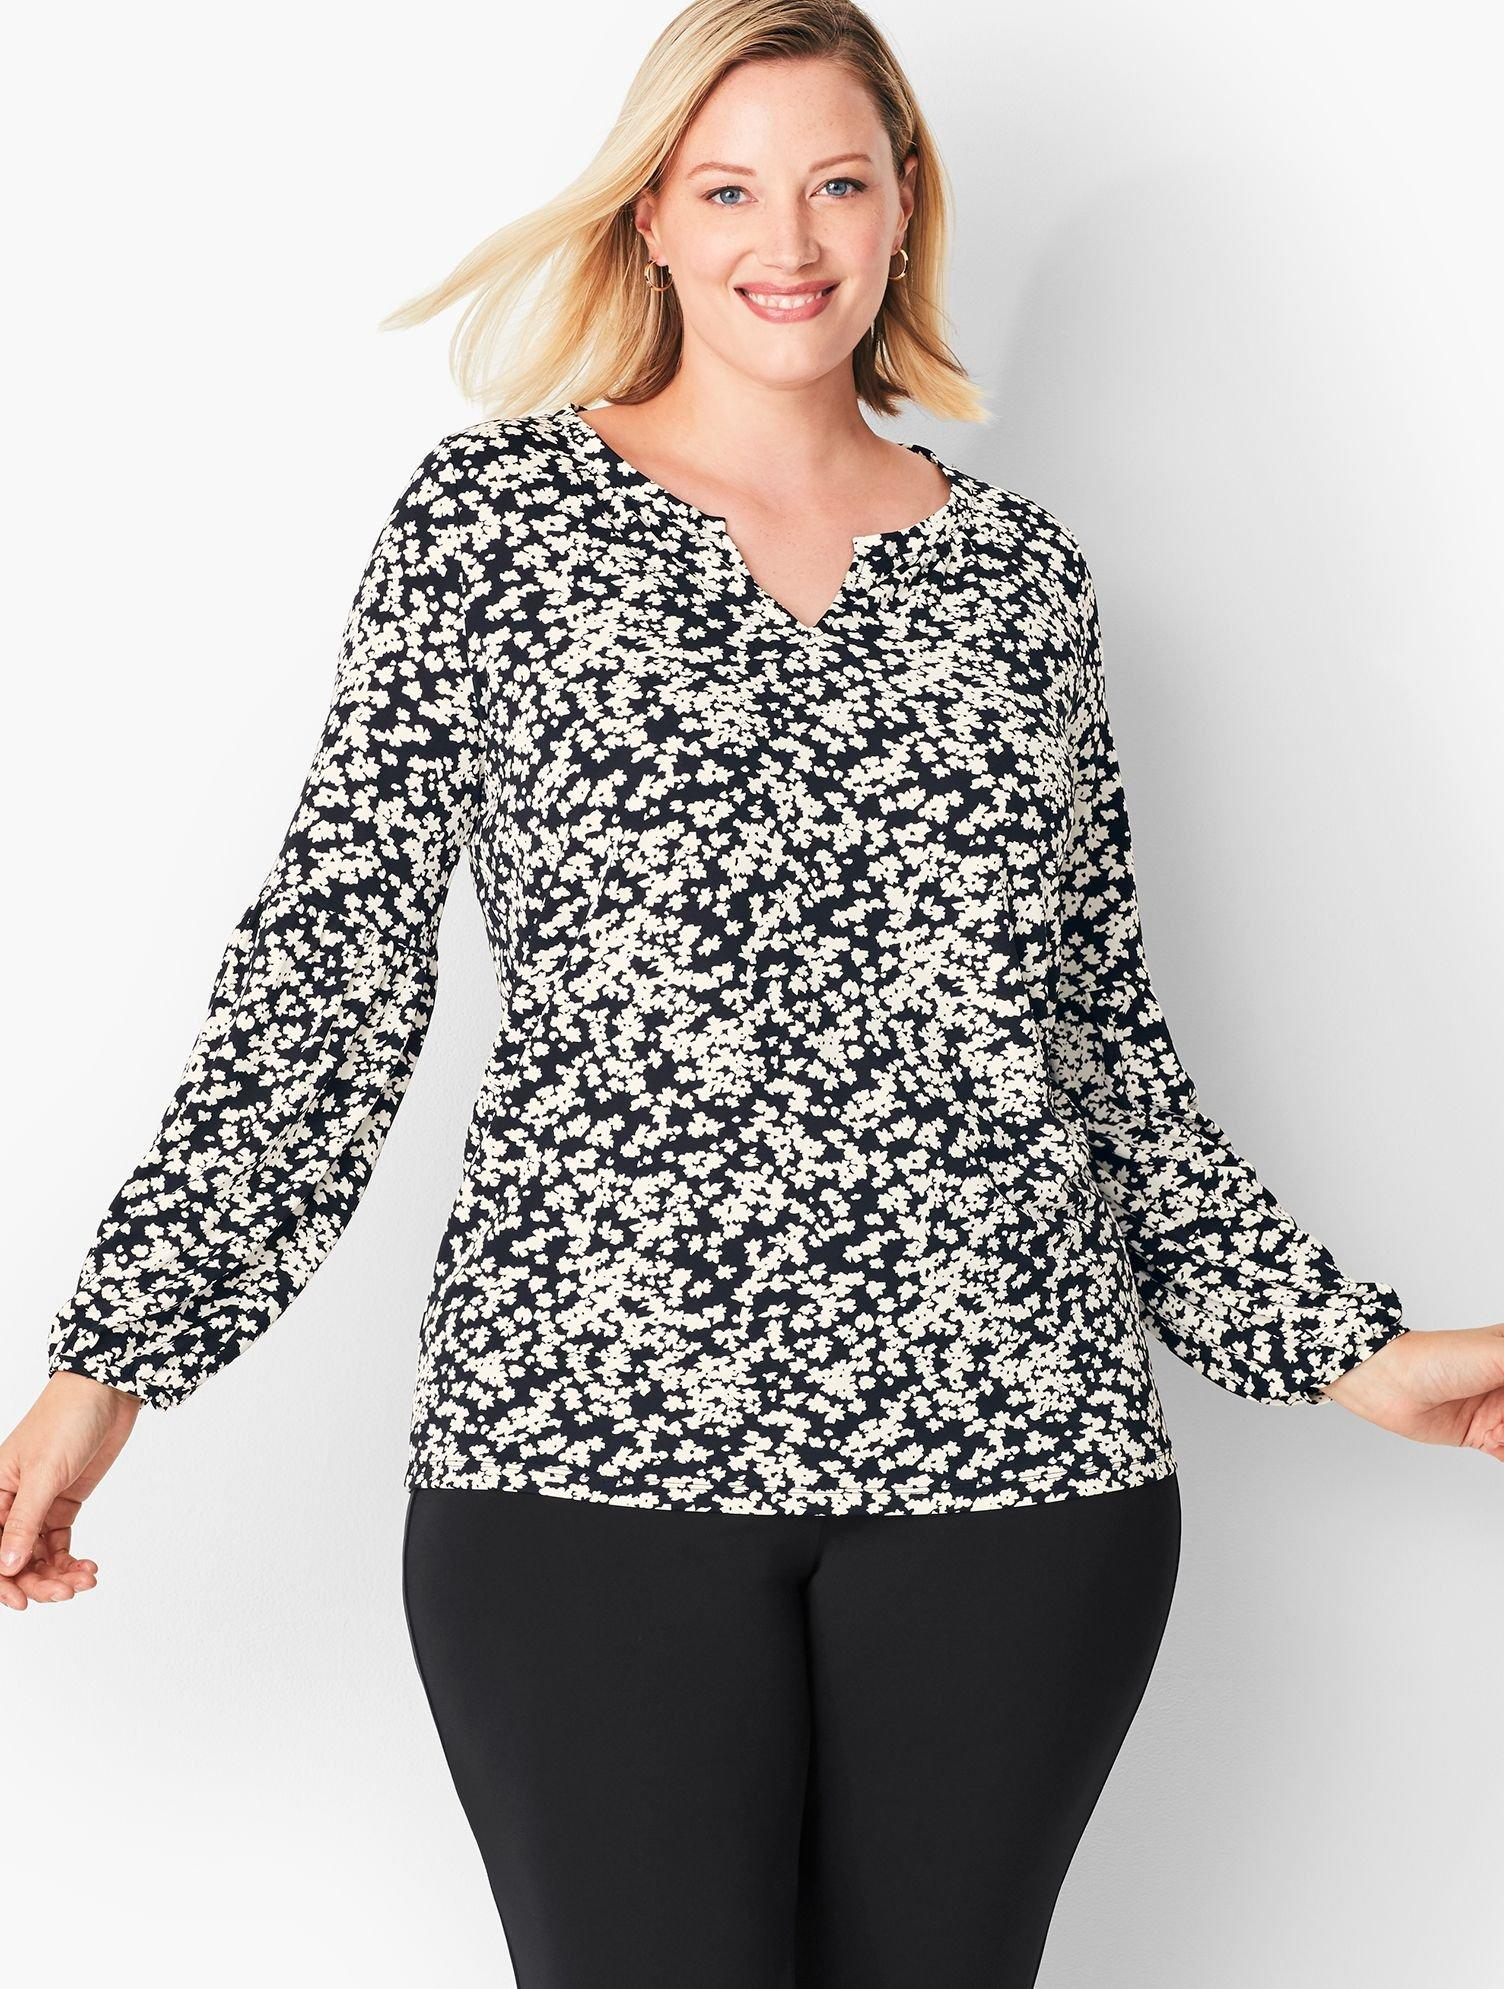 ae2c842f4bcfbb Lyst - Talbots Plus Size Exclusive Split-neck Floral Tunic in Black